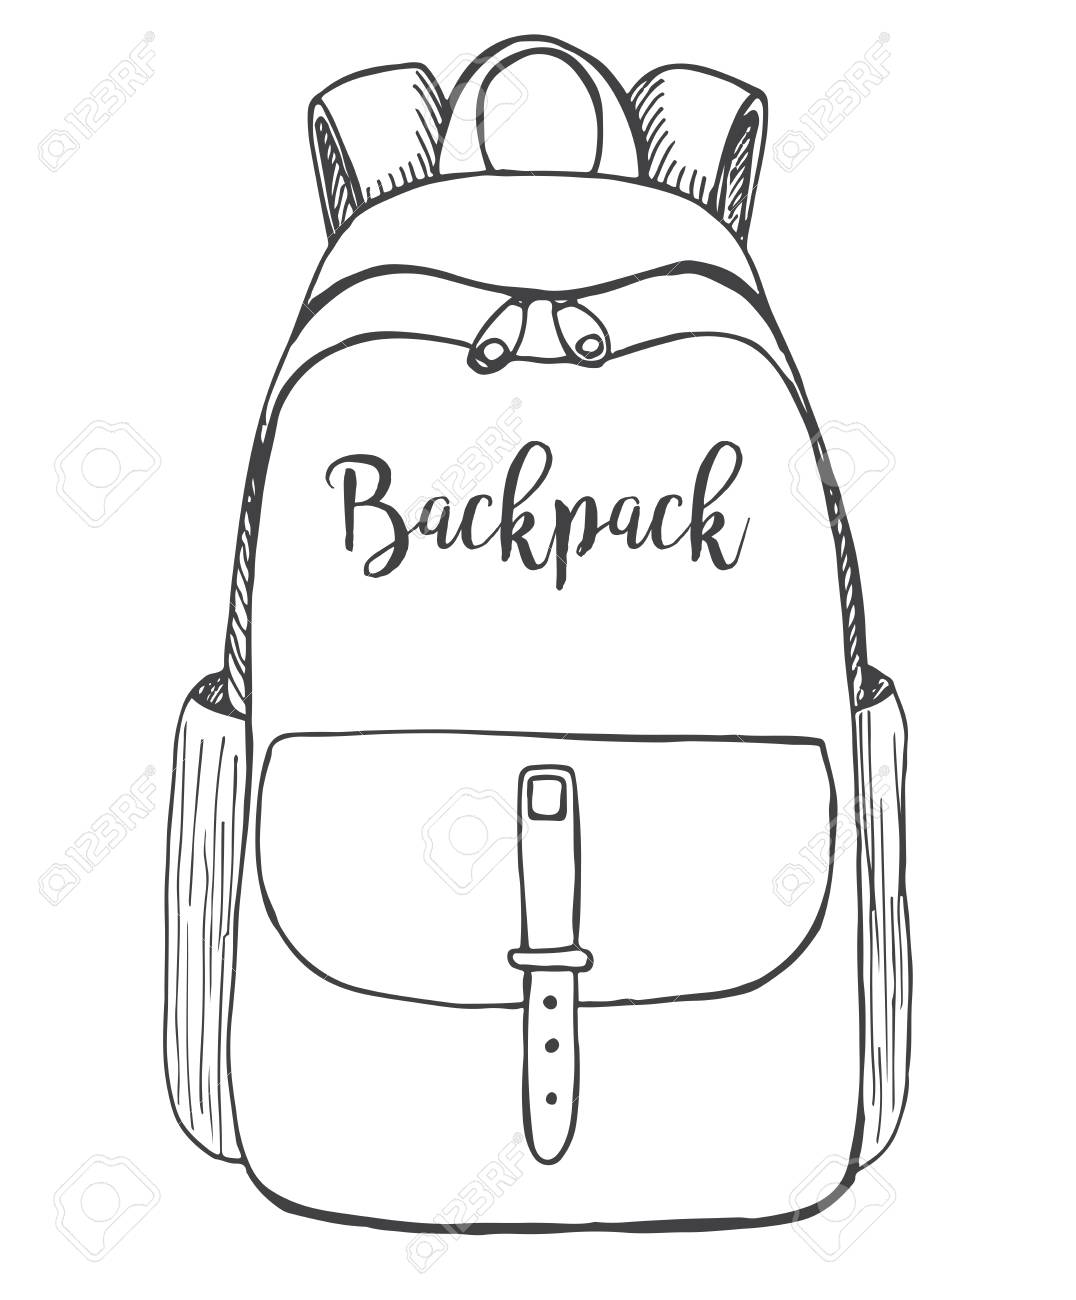 b1503bd57c7 Sketch of a rucksack. Backpack isolated on white background. Vector  illustration of a sketch